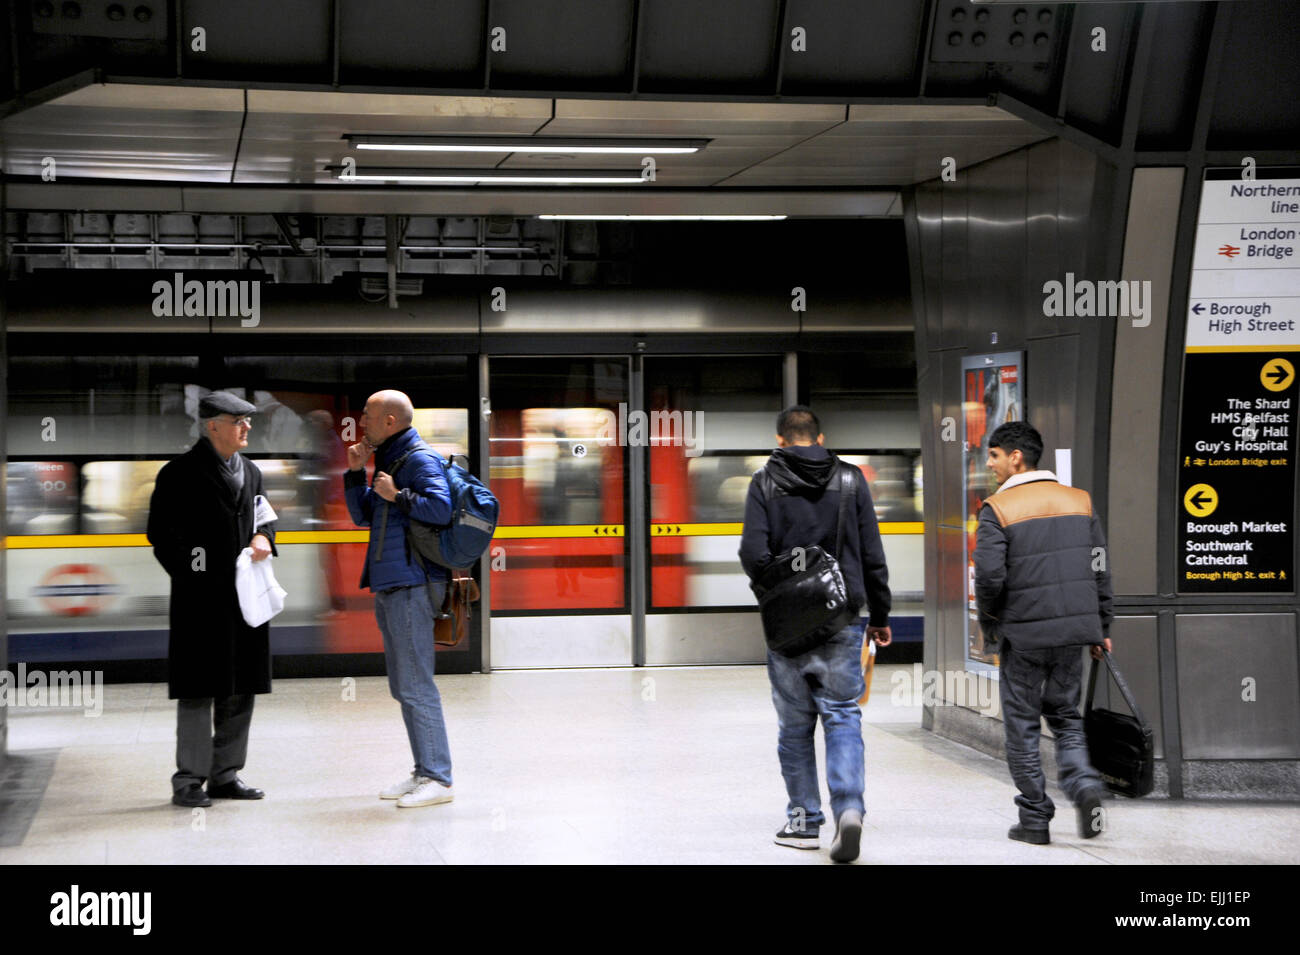 London England UK - Commuters about to board a tube at London Bridge underground station on Jubilee Line Stock Photo